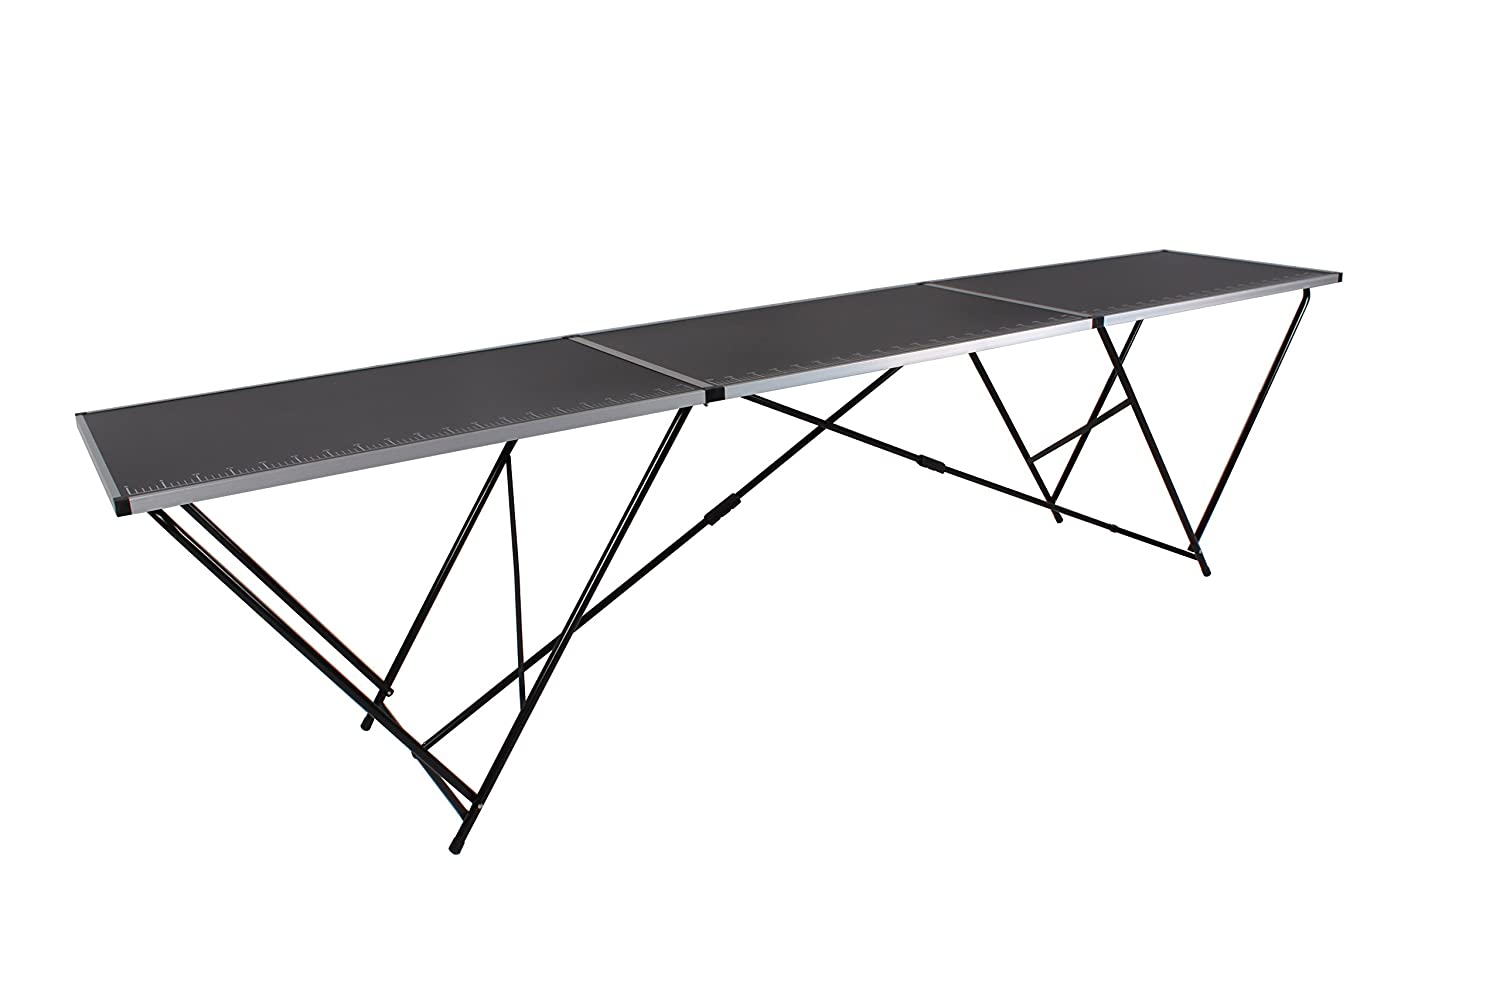 EazyGoods 3 Metre Pasting Table, MDF Top/Aluminium Frame, Black, 300 x 60 x 78 cm Eazy Goods Ltd 3M